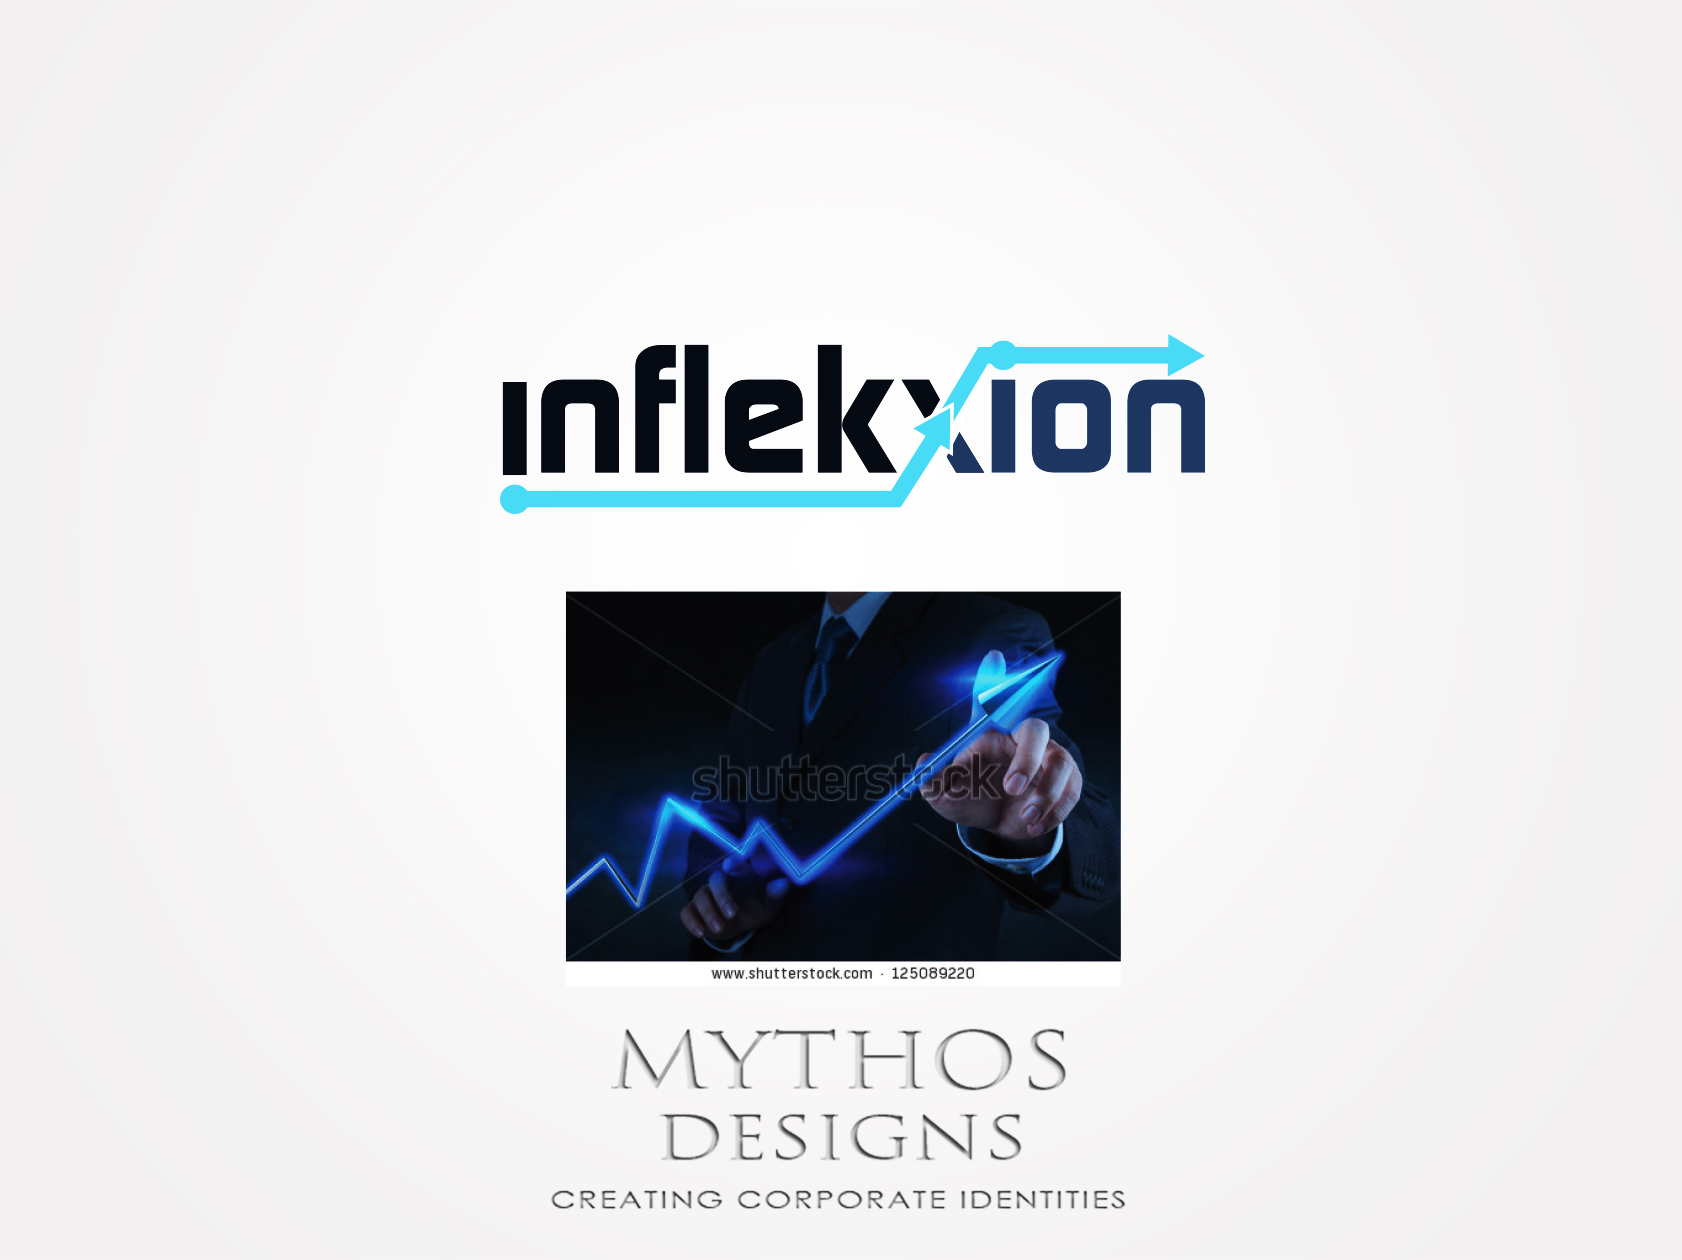 Logo Design by Mythos Designs - Entry No. 194 in the Logo Design Contest Professional Logo Design for Inflekxion.